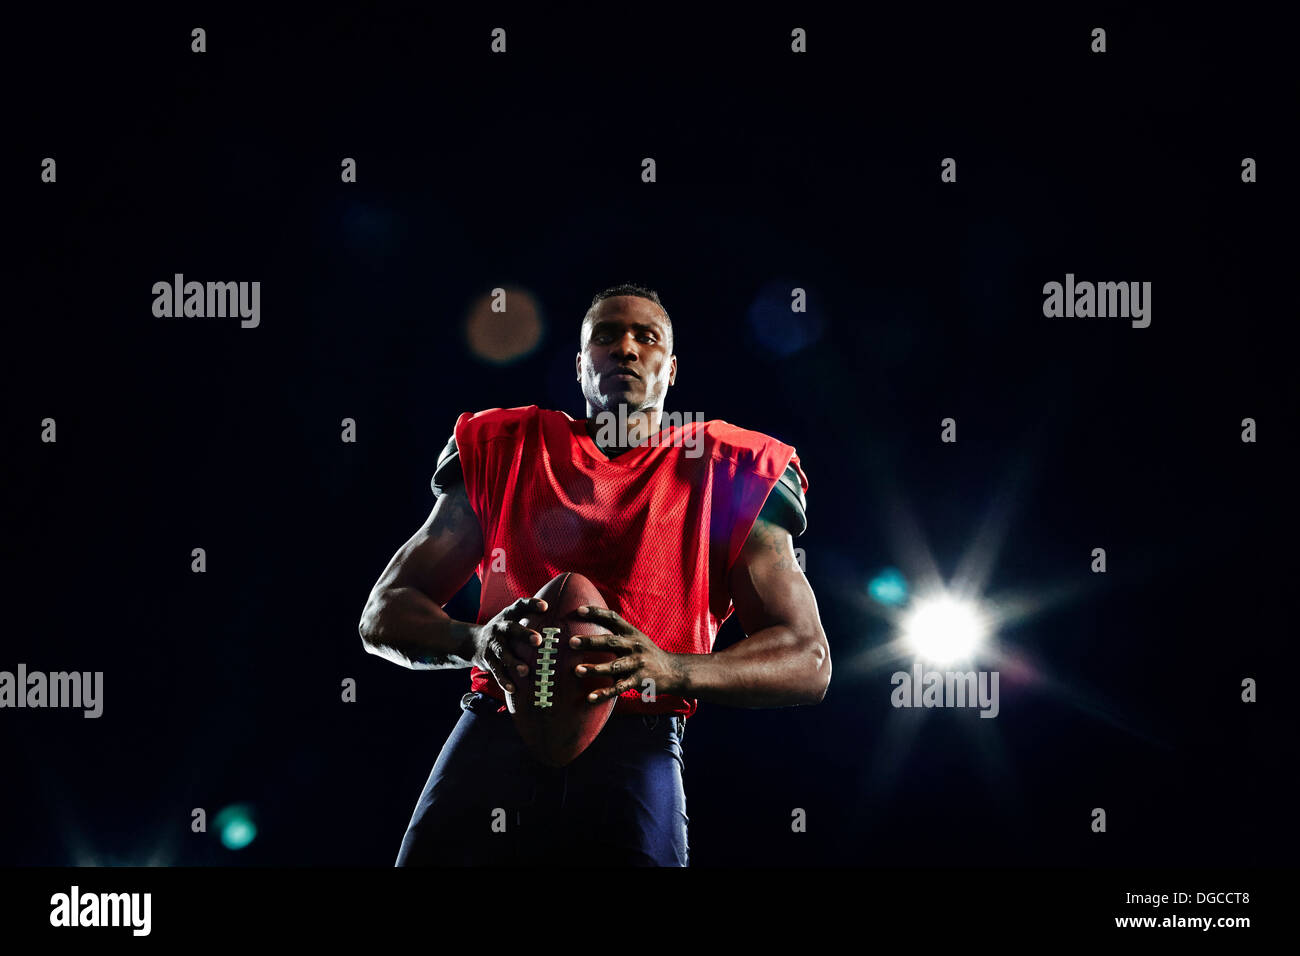 Portrait of american football player with ball Photo Stock